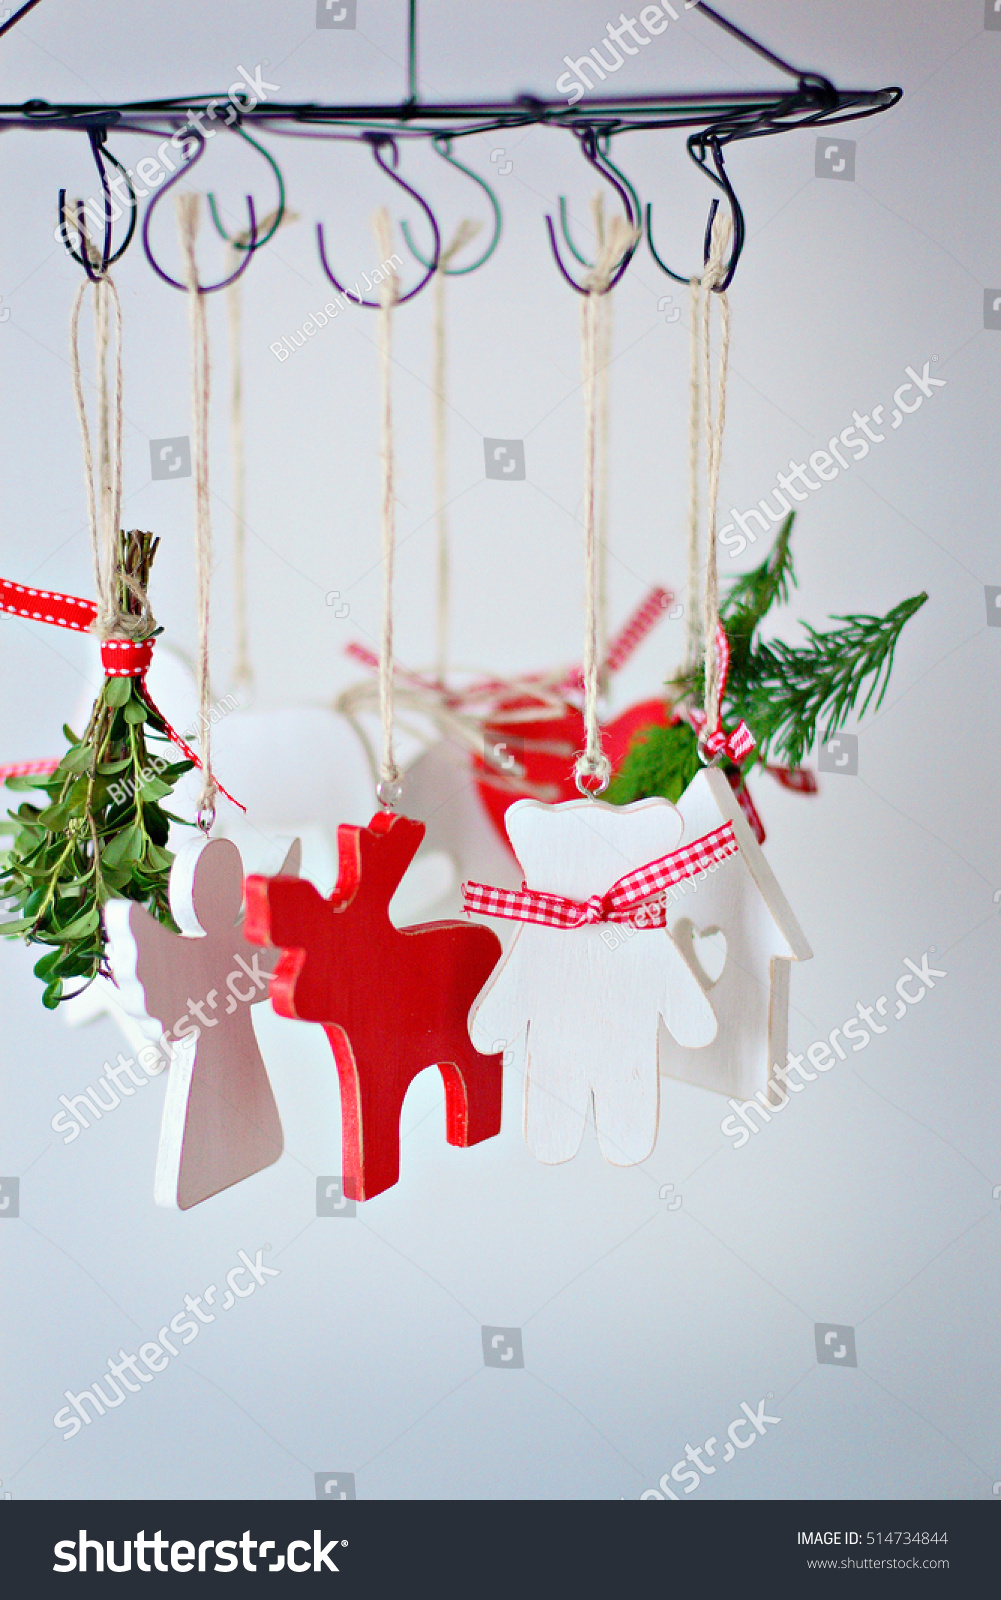 Handmade Hanging Wooden Ornaments Greens Red Stock Photo Edit Now 514734844